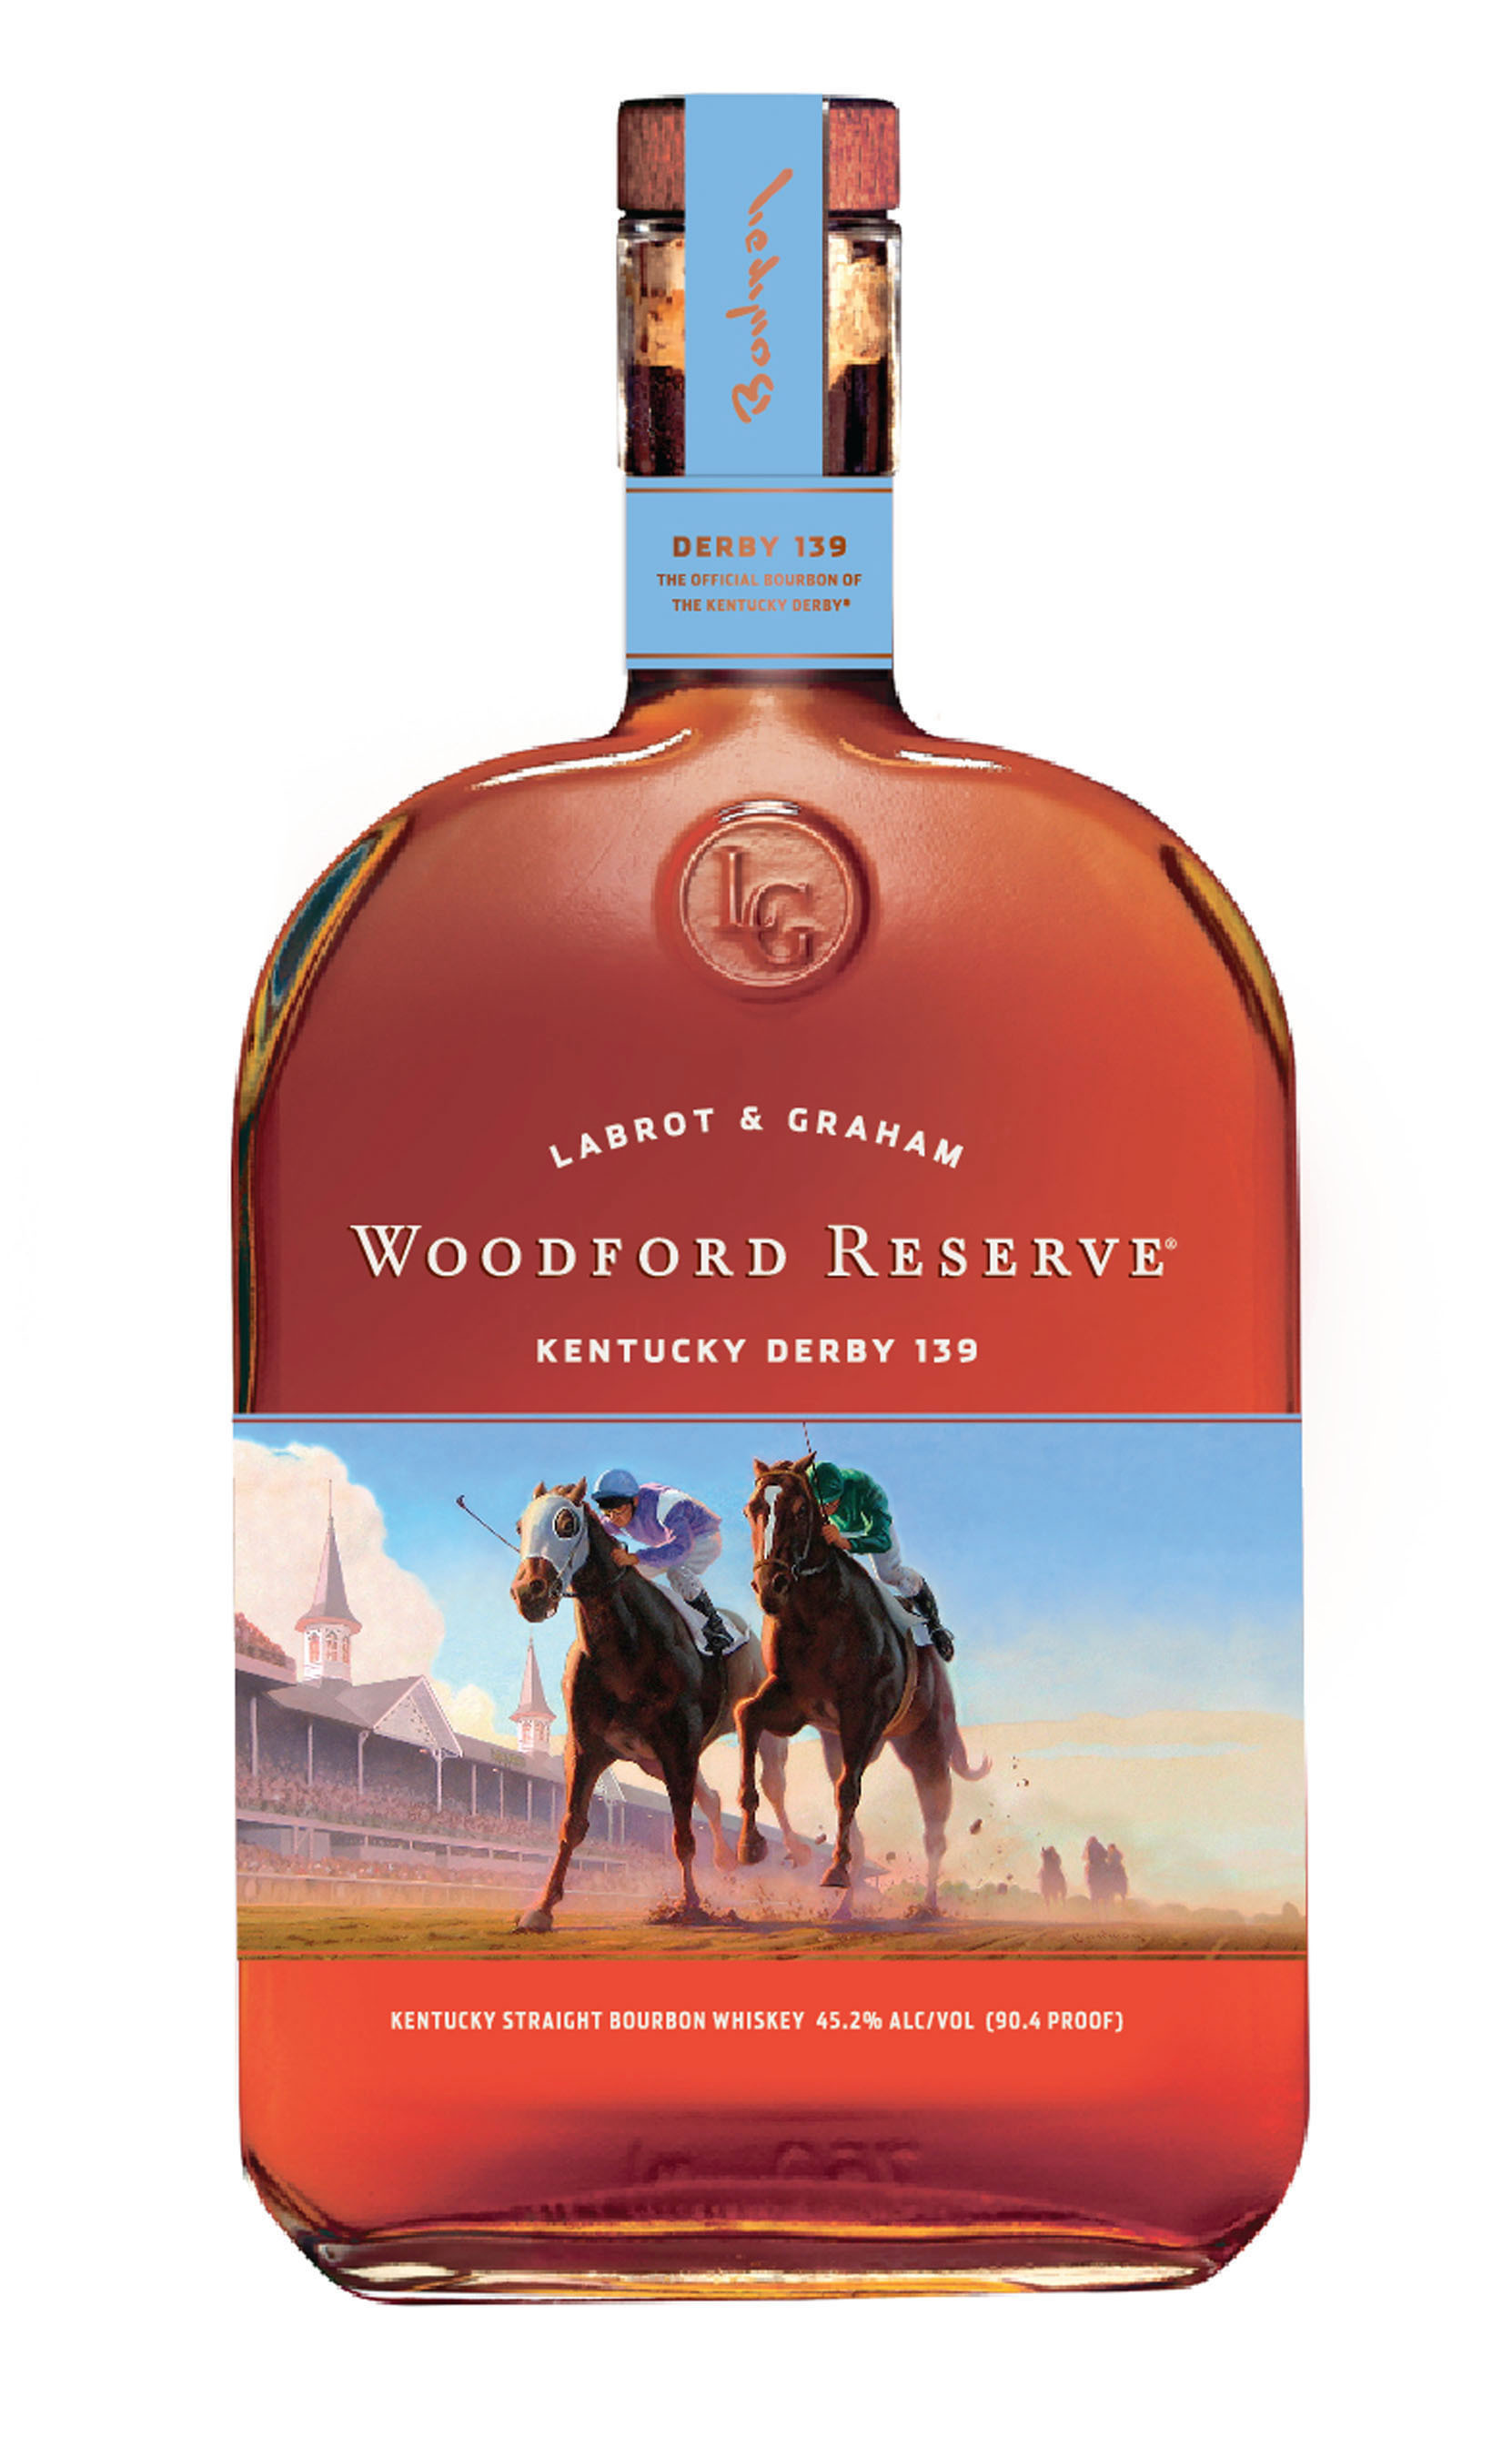 Woodford Reserve bourbon releases limited edition 2013 Kentucky Derby bottle. (PRNewsFoto/Woodford Reserve) (PRNewsFoto/WOODFORD RESERVE)